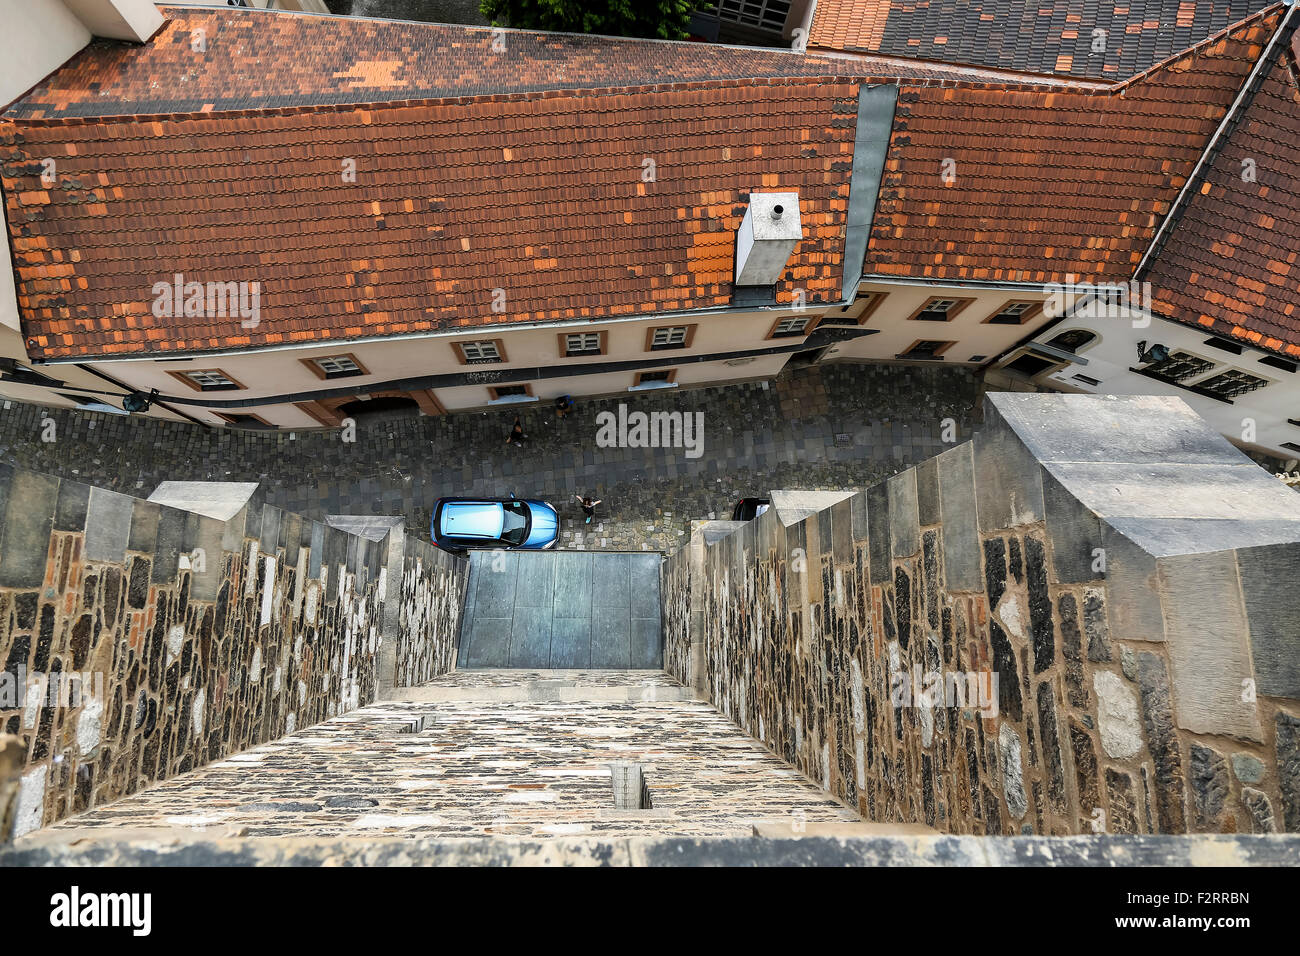 Brno vertical street view - Stock Image